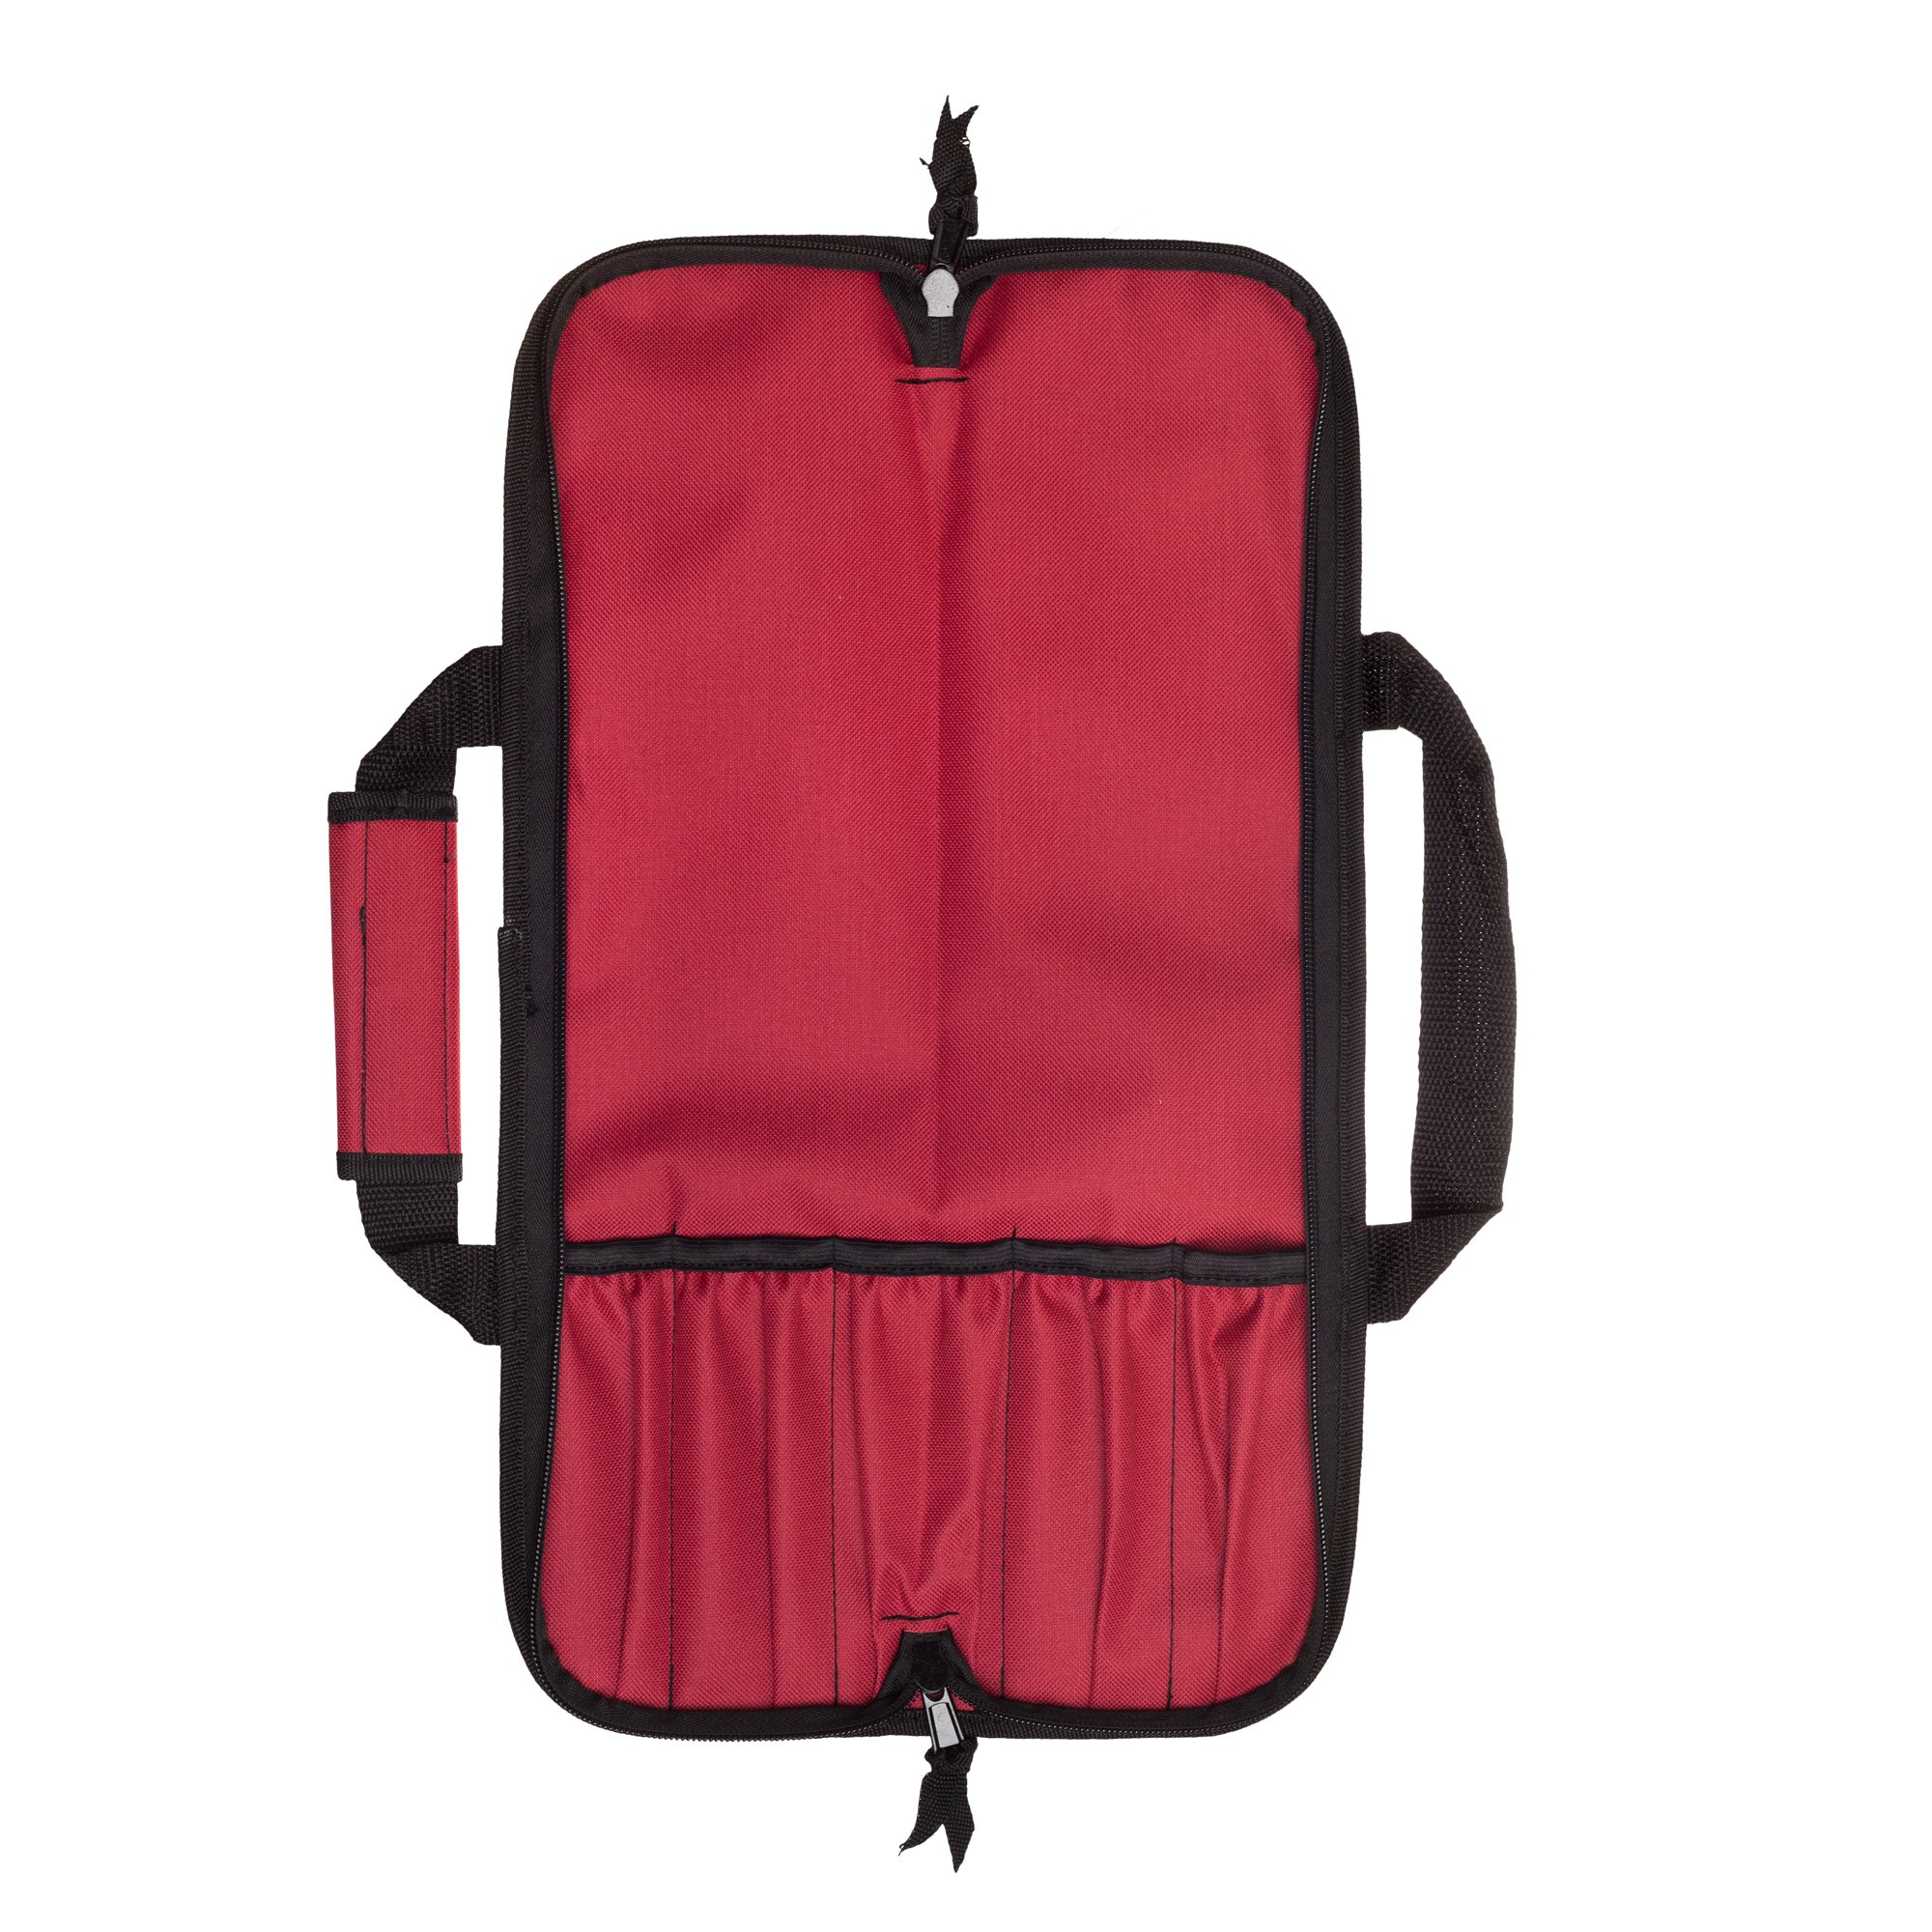 5 Pocket Padded Chef Knife Case Roll with 5 pc. Edge Guards (Red 5 Pocket bag w/5pc. Black Edge guards) by Ergo Chef (Image #4)